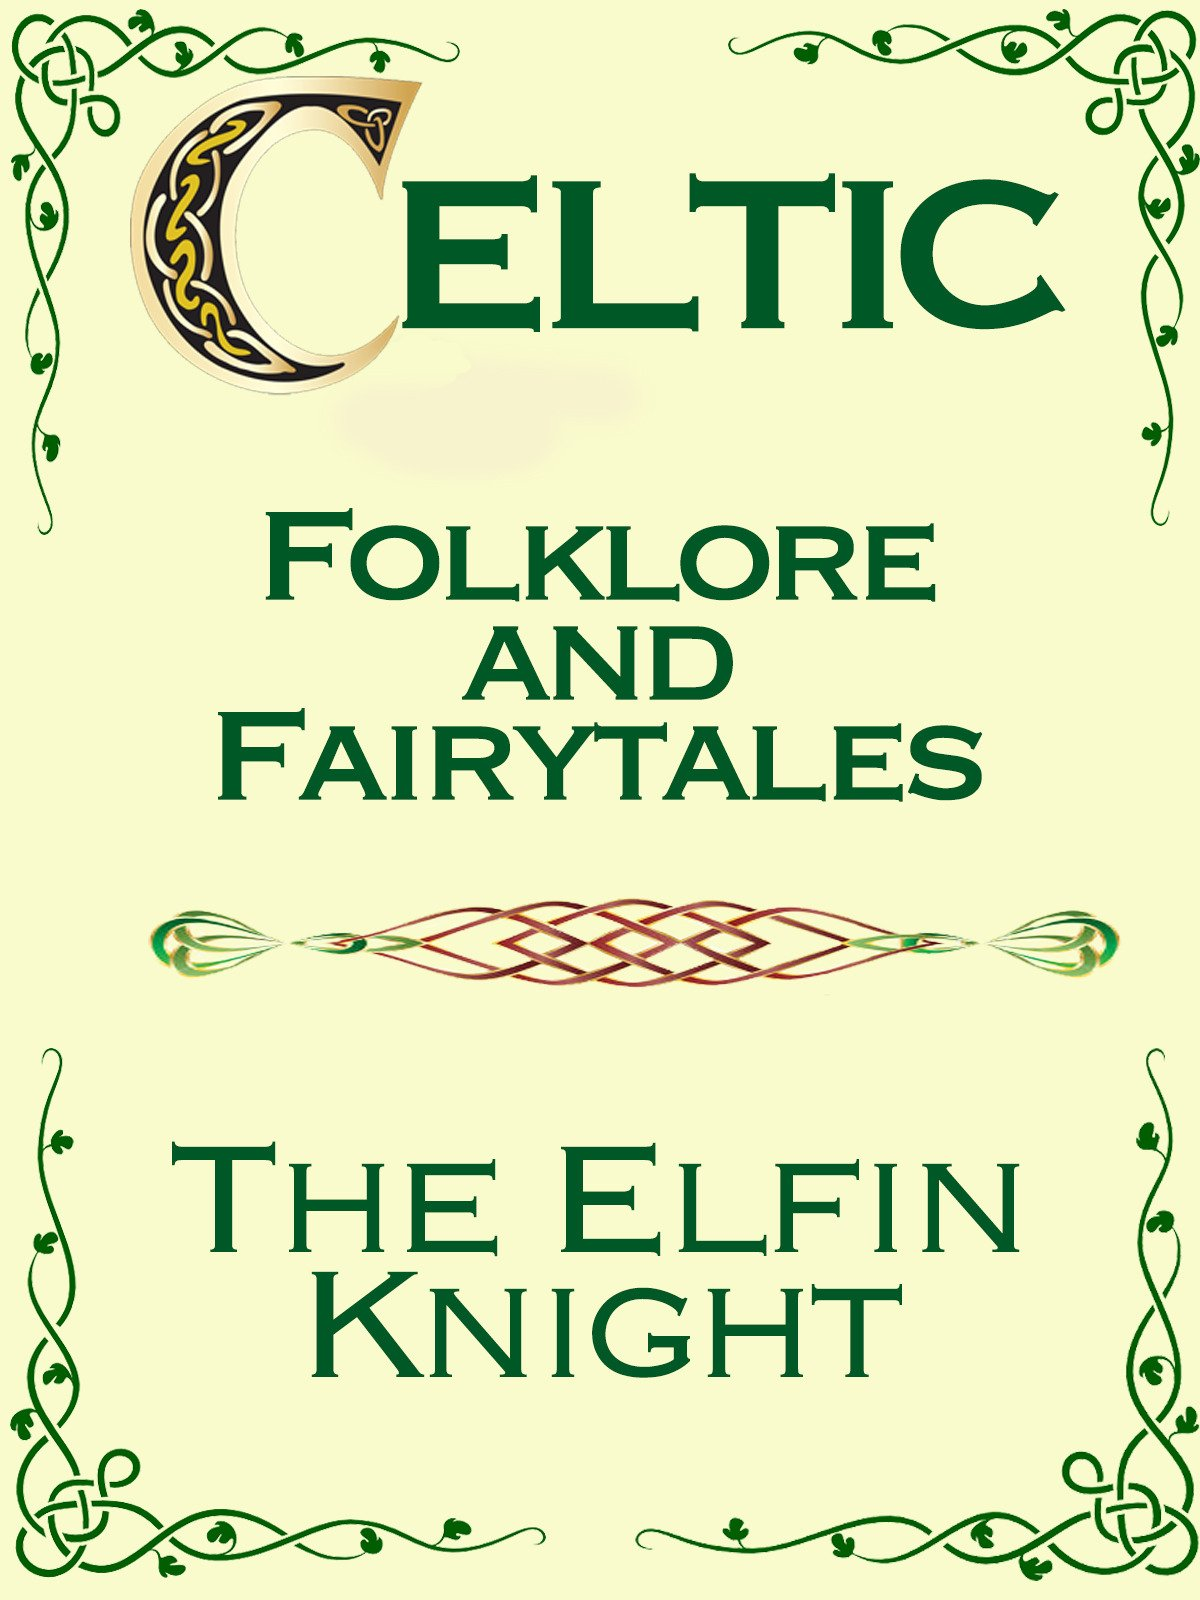 Celtic Folklore and Fairytales